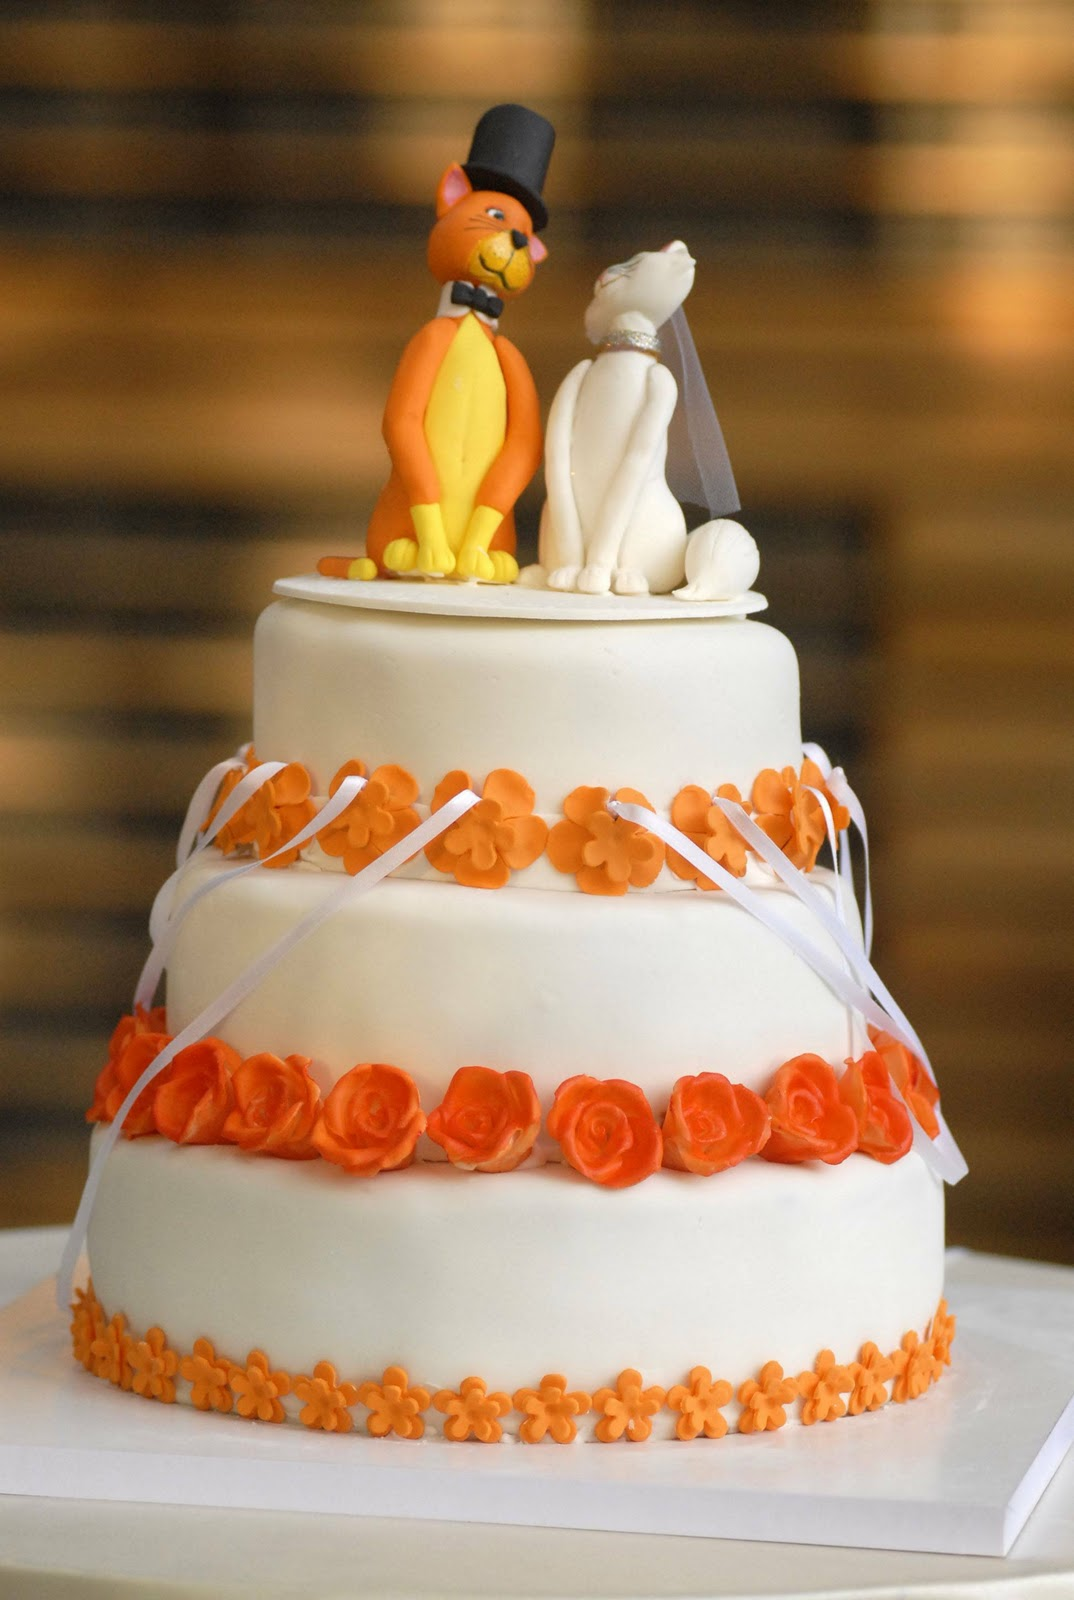 Facebook Ony Cake Decor : Cake Decorating Blog: One of my facebook friends told me ...